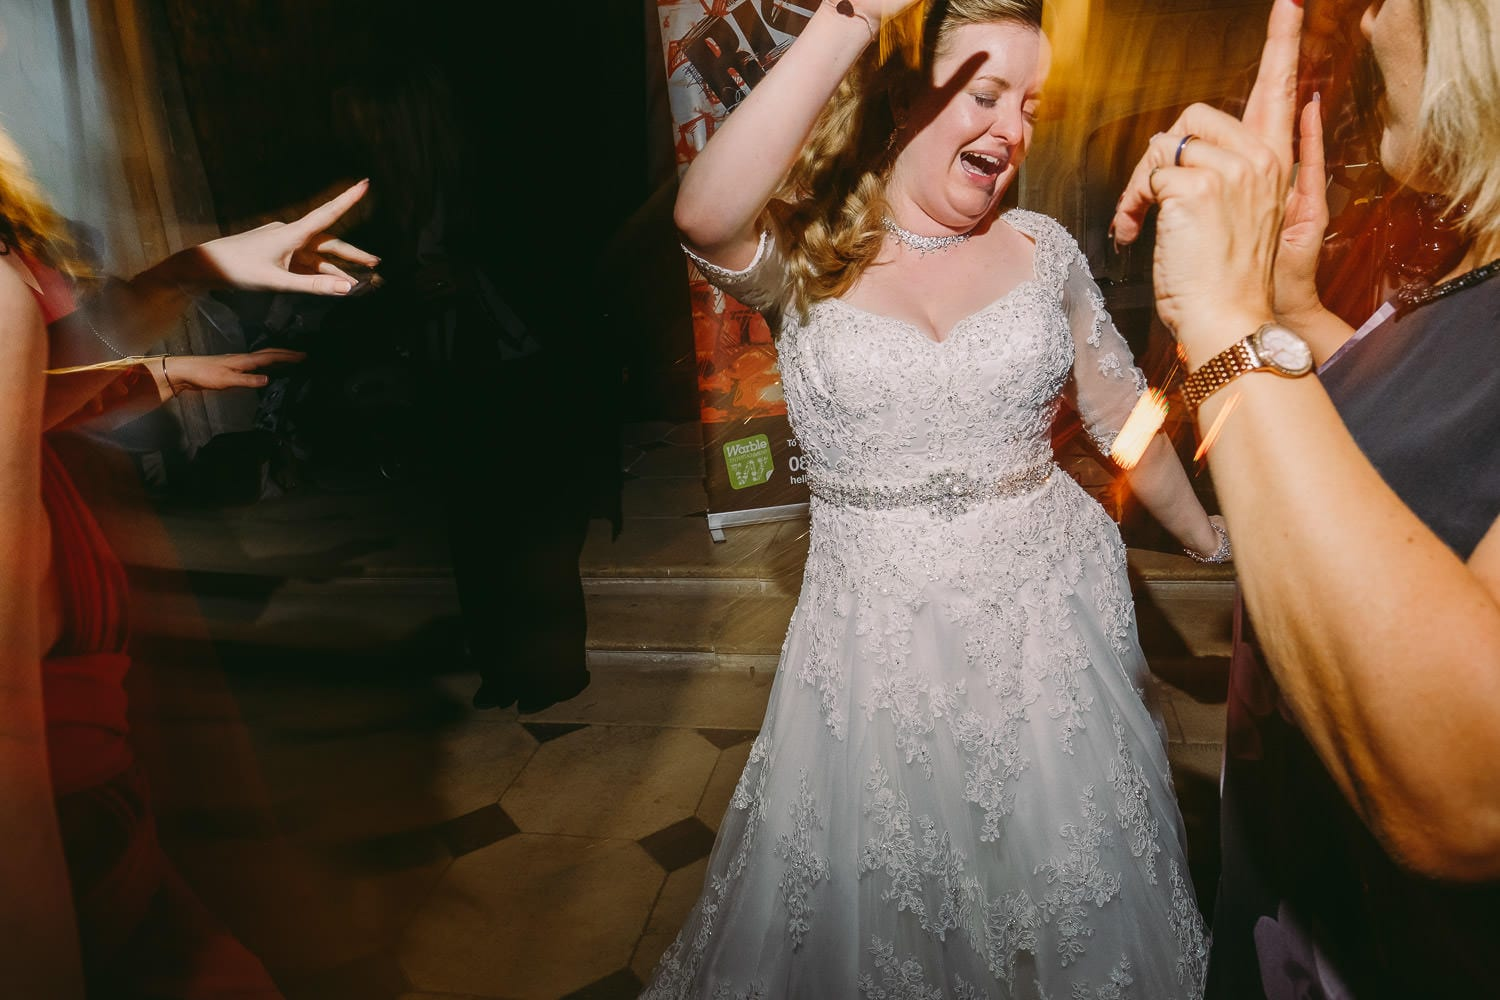 The bride dances with guests